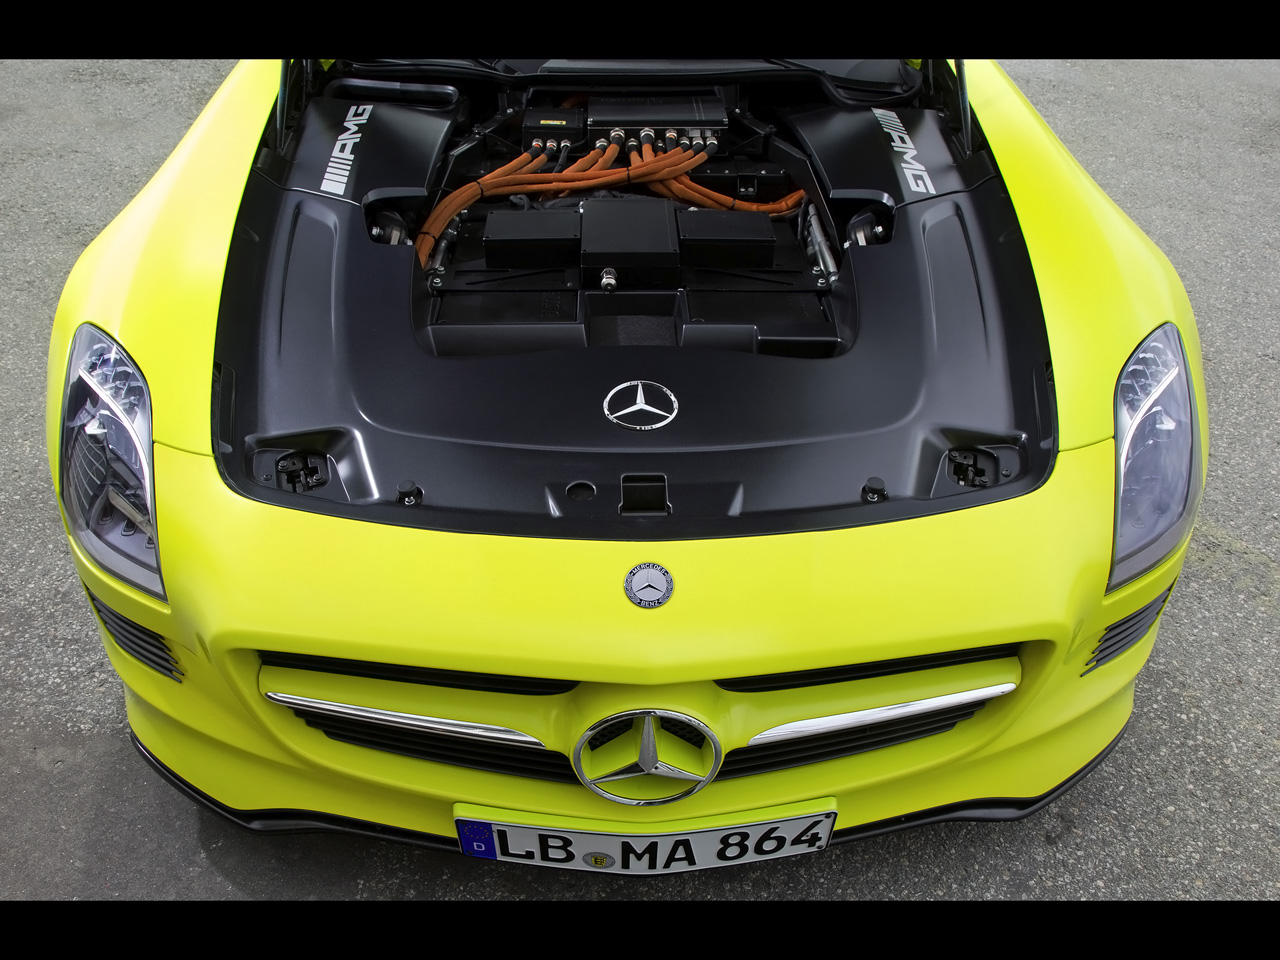 2010-mercedes-benz-sls-amg-e-cell-engine-compartment-1280x960